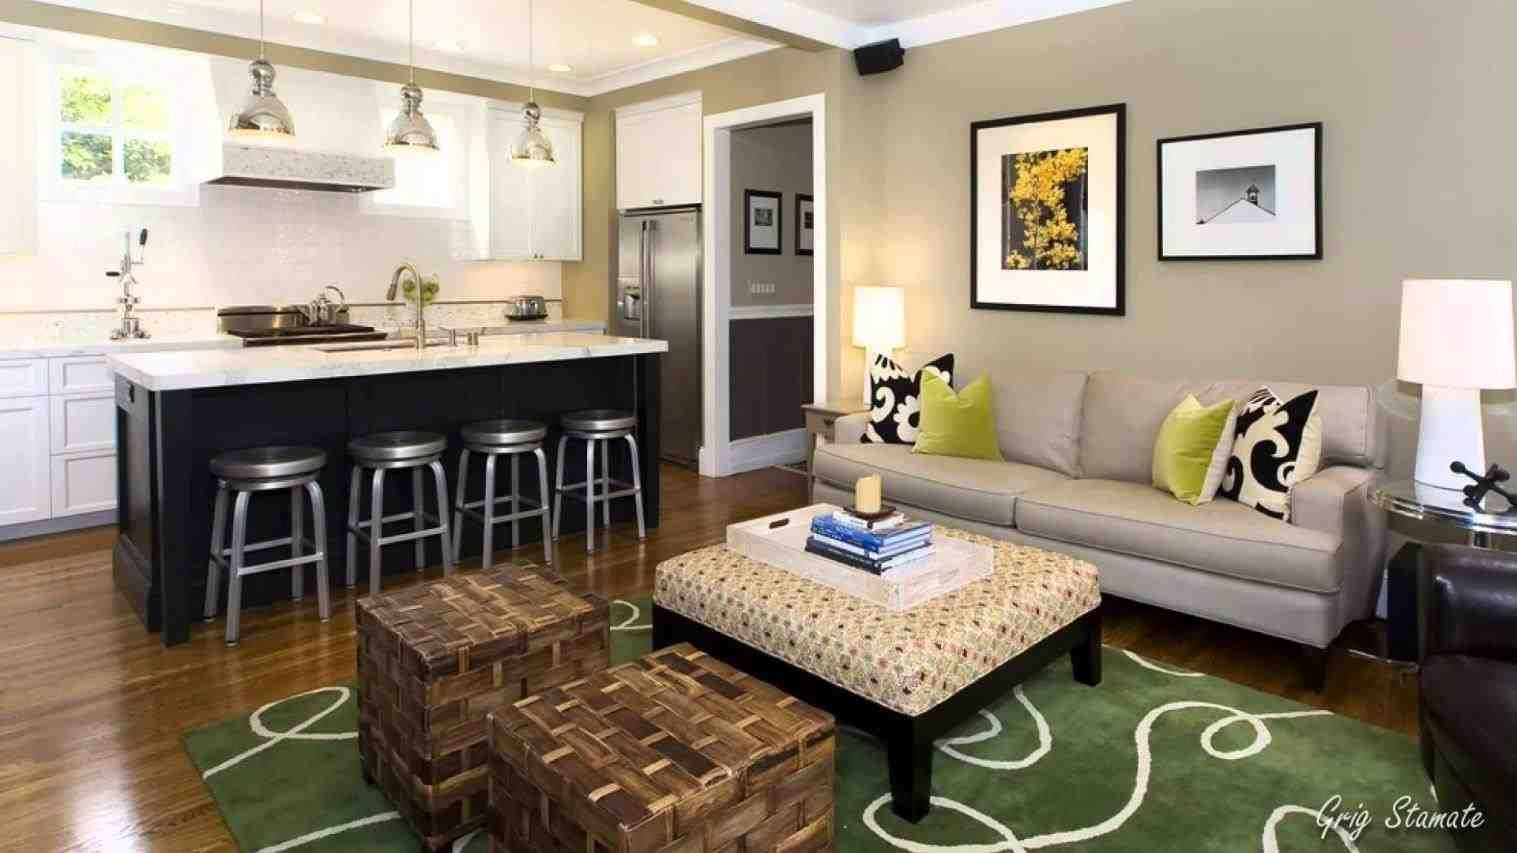 Apartment fancy lenox terrace apartments home design ideas with bedroom also rh pinterest